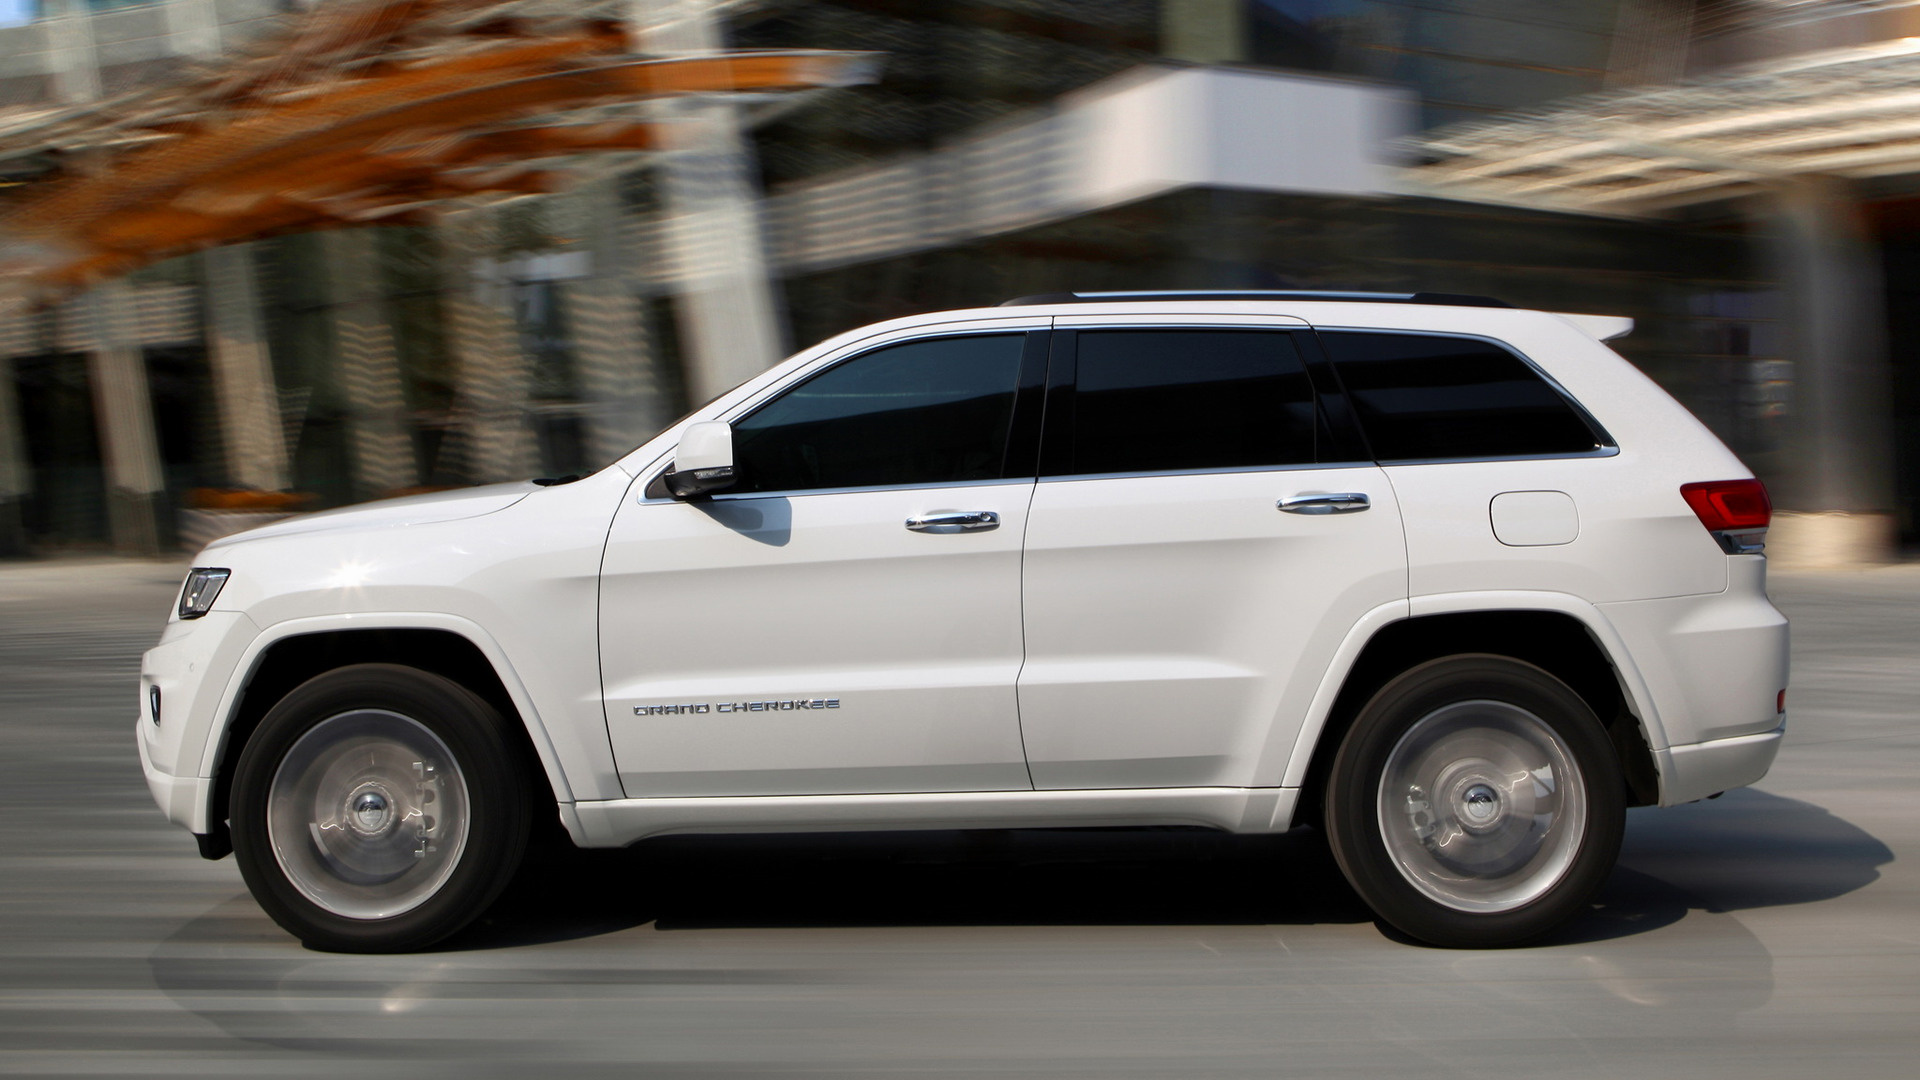 Jeep grand cherokee trailhawk desktop wallpaper hd car wallpapers - Jeep Grand Cherokee Overland 2013 Eu Wallpapers And Hd